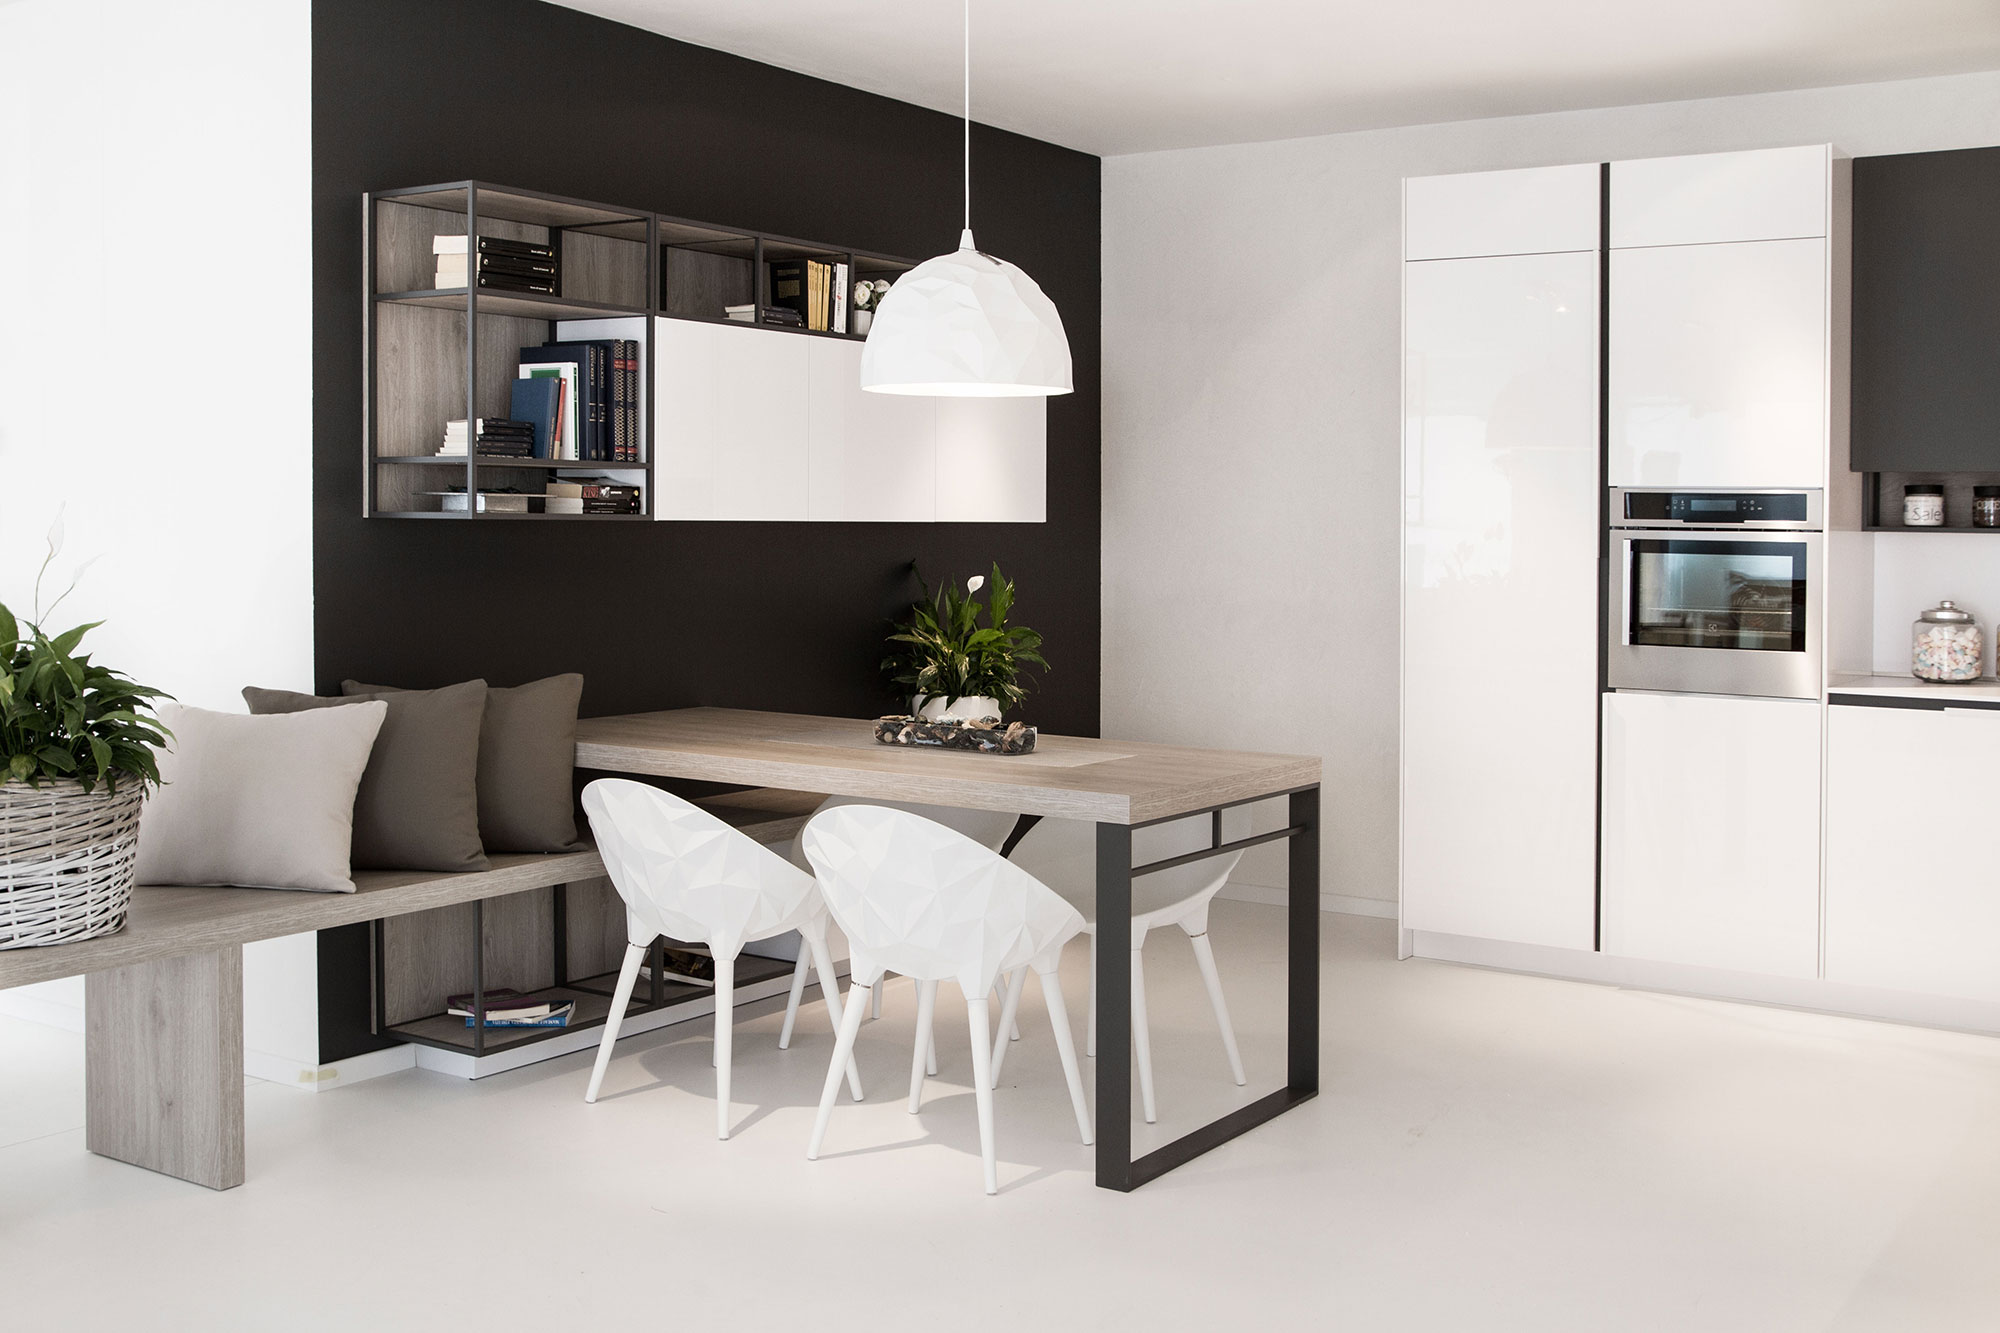 Corner Kitchen: 5 Inspiring Ideas - Snaidero